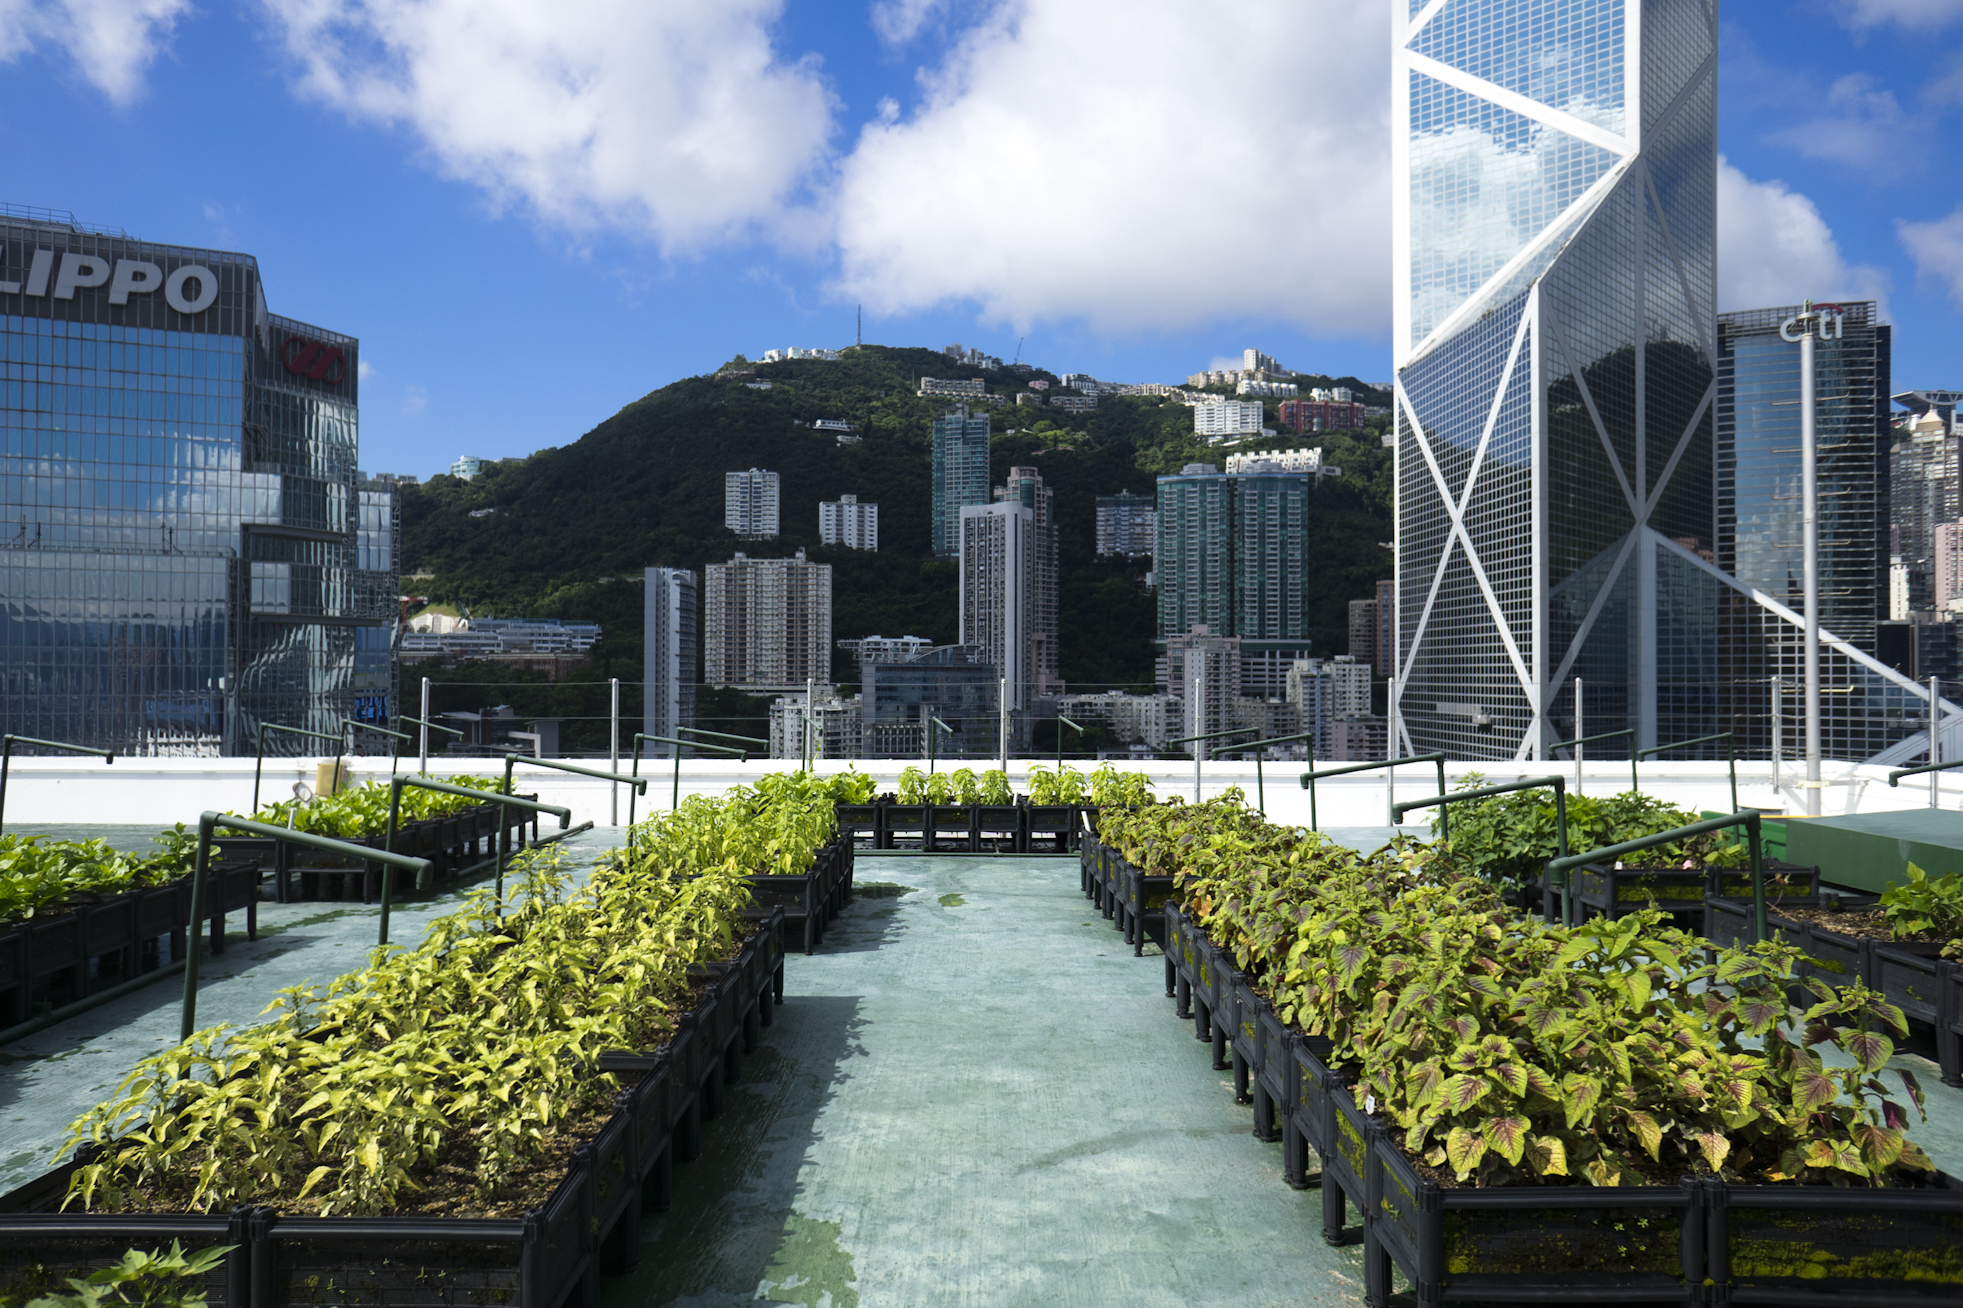 21 tips to sustainable living in Hong Kong